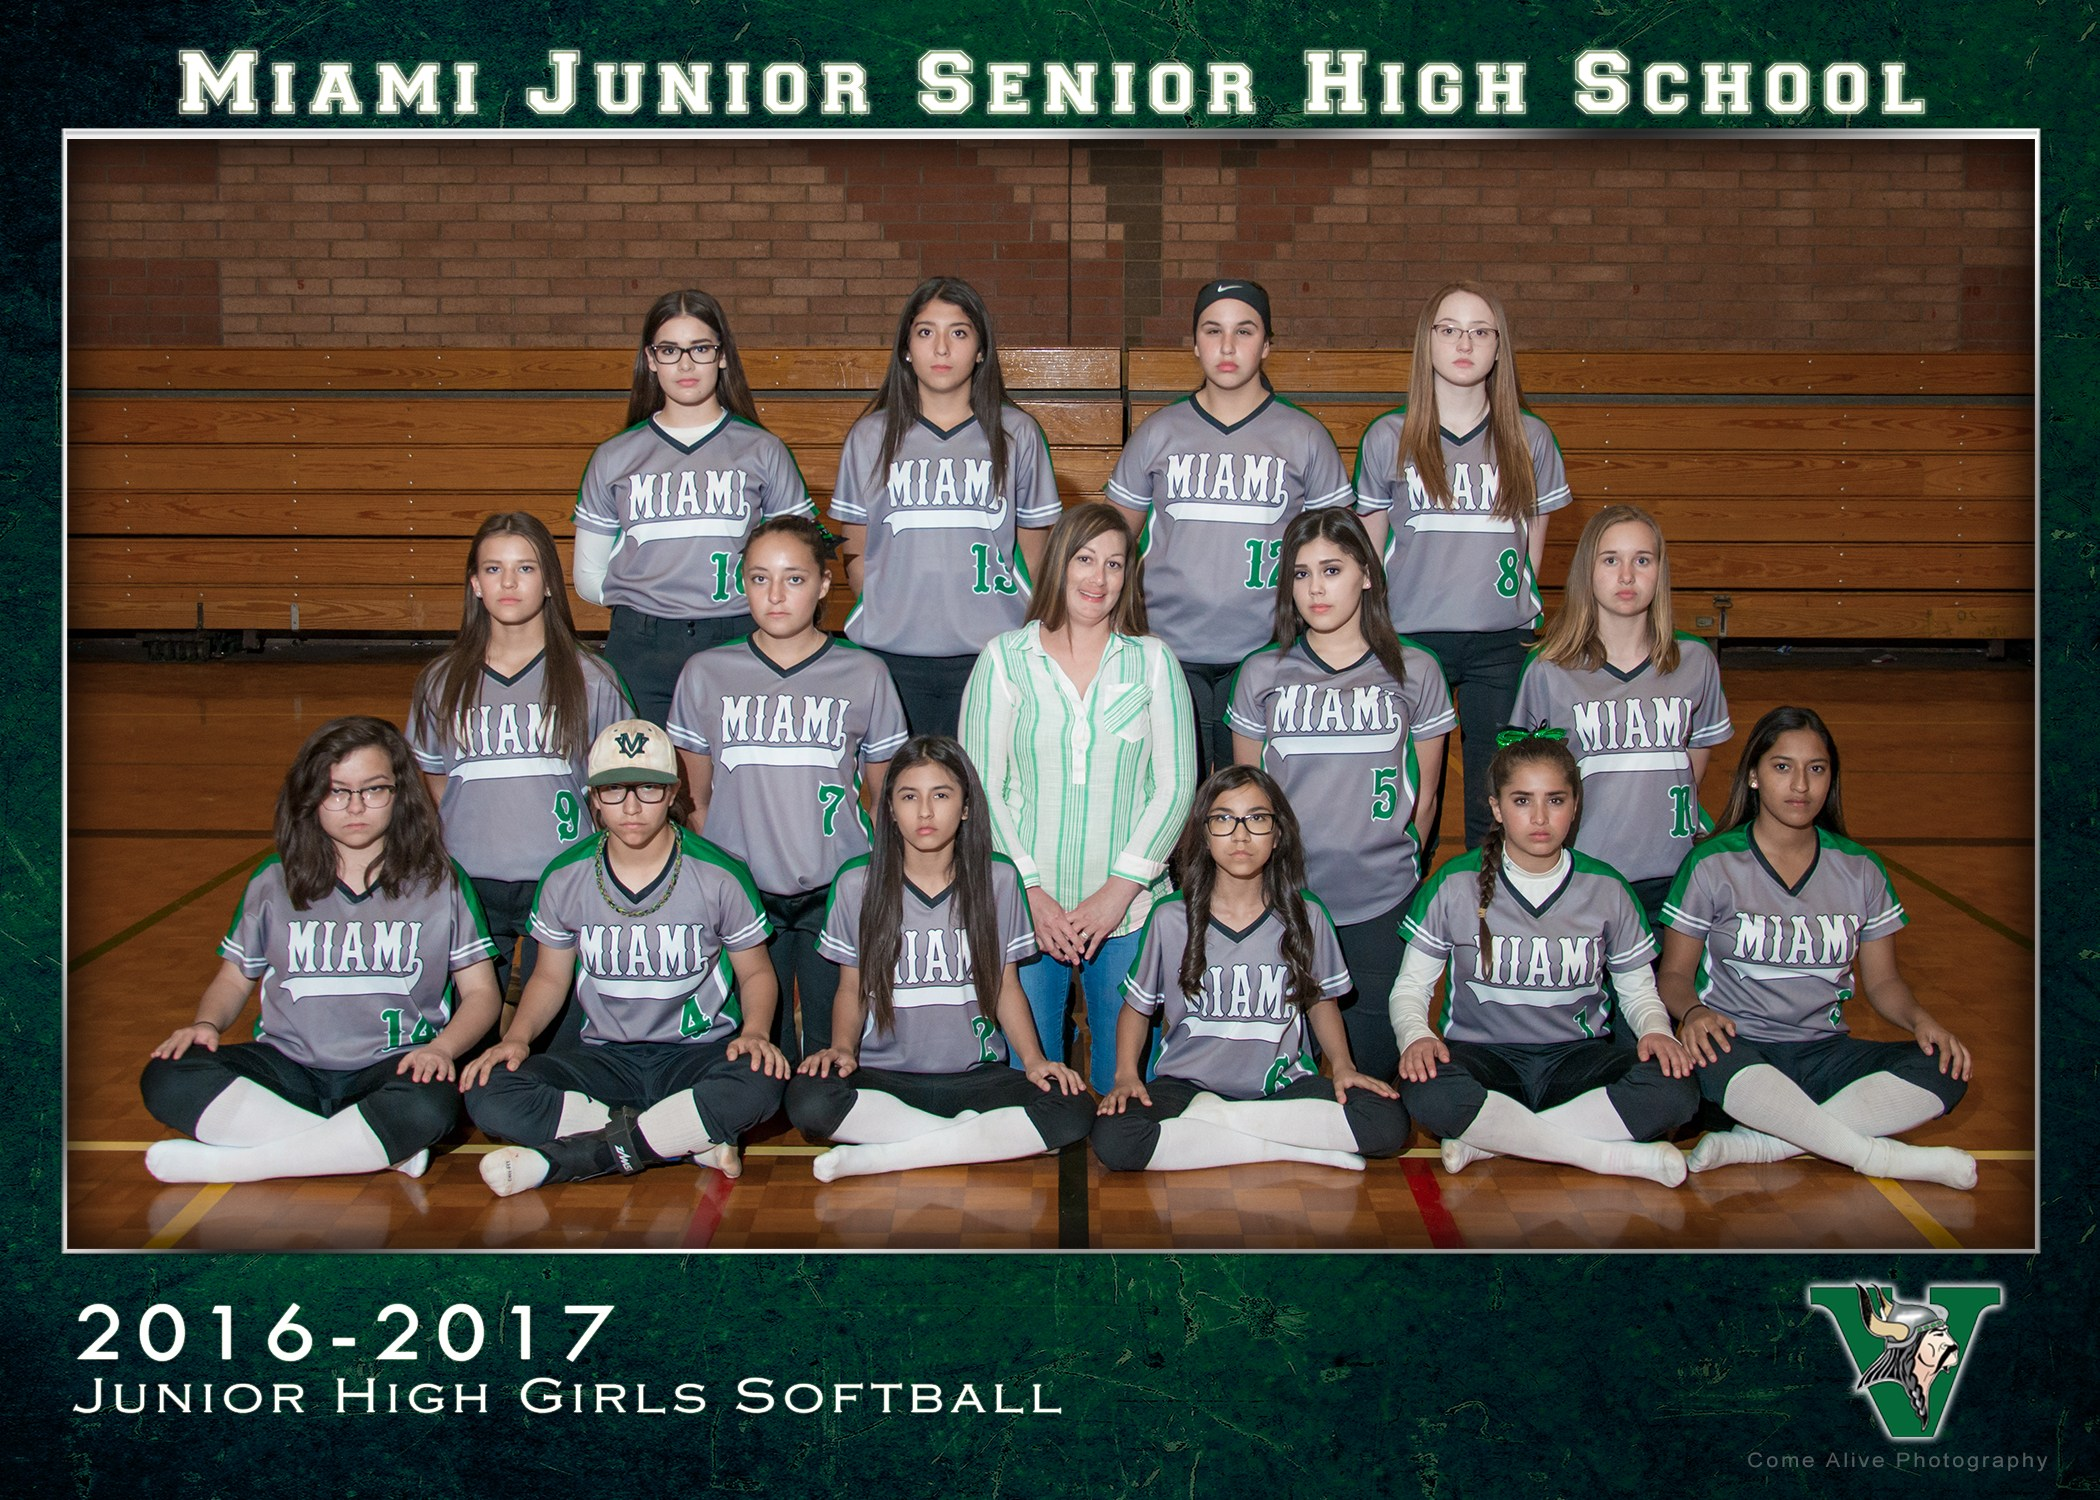 Junior High Girls Baseball